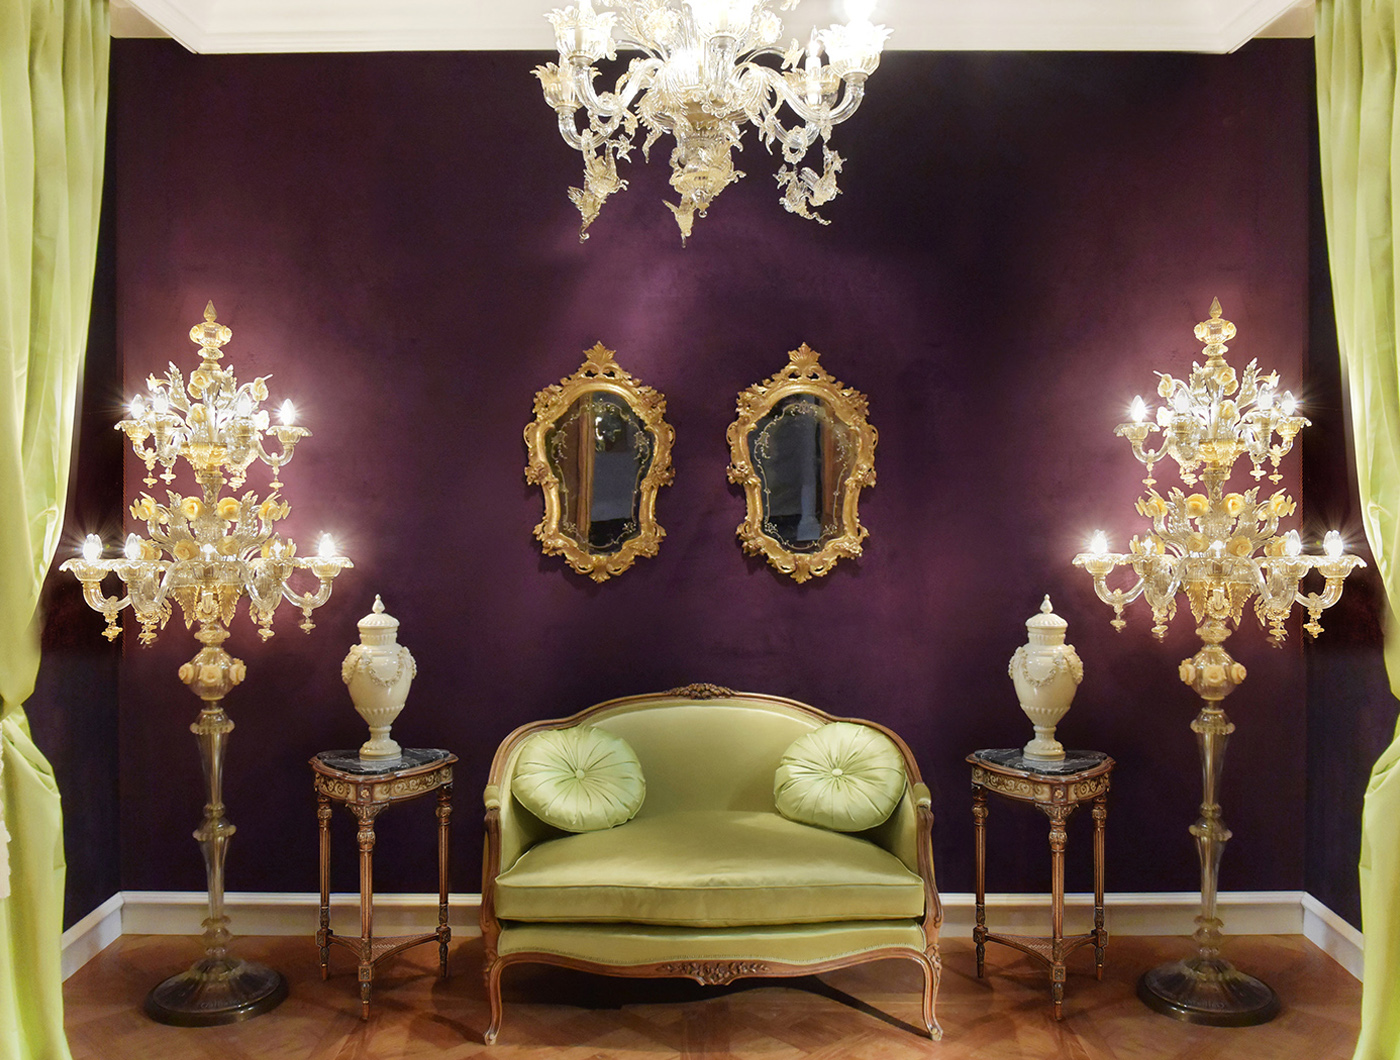 Louis XV sofa, Louis XVI table, venetian gilt mirror, Murano floor lamp, Murano chandeliere | P.& G. Cugini Lanzani